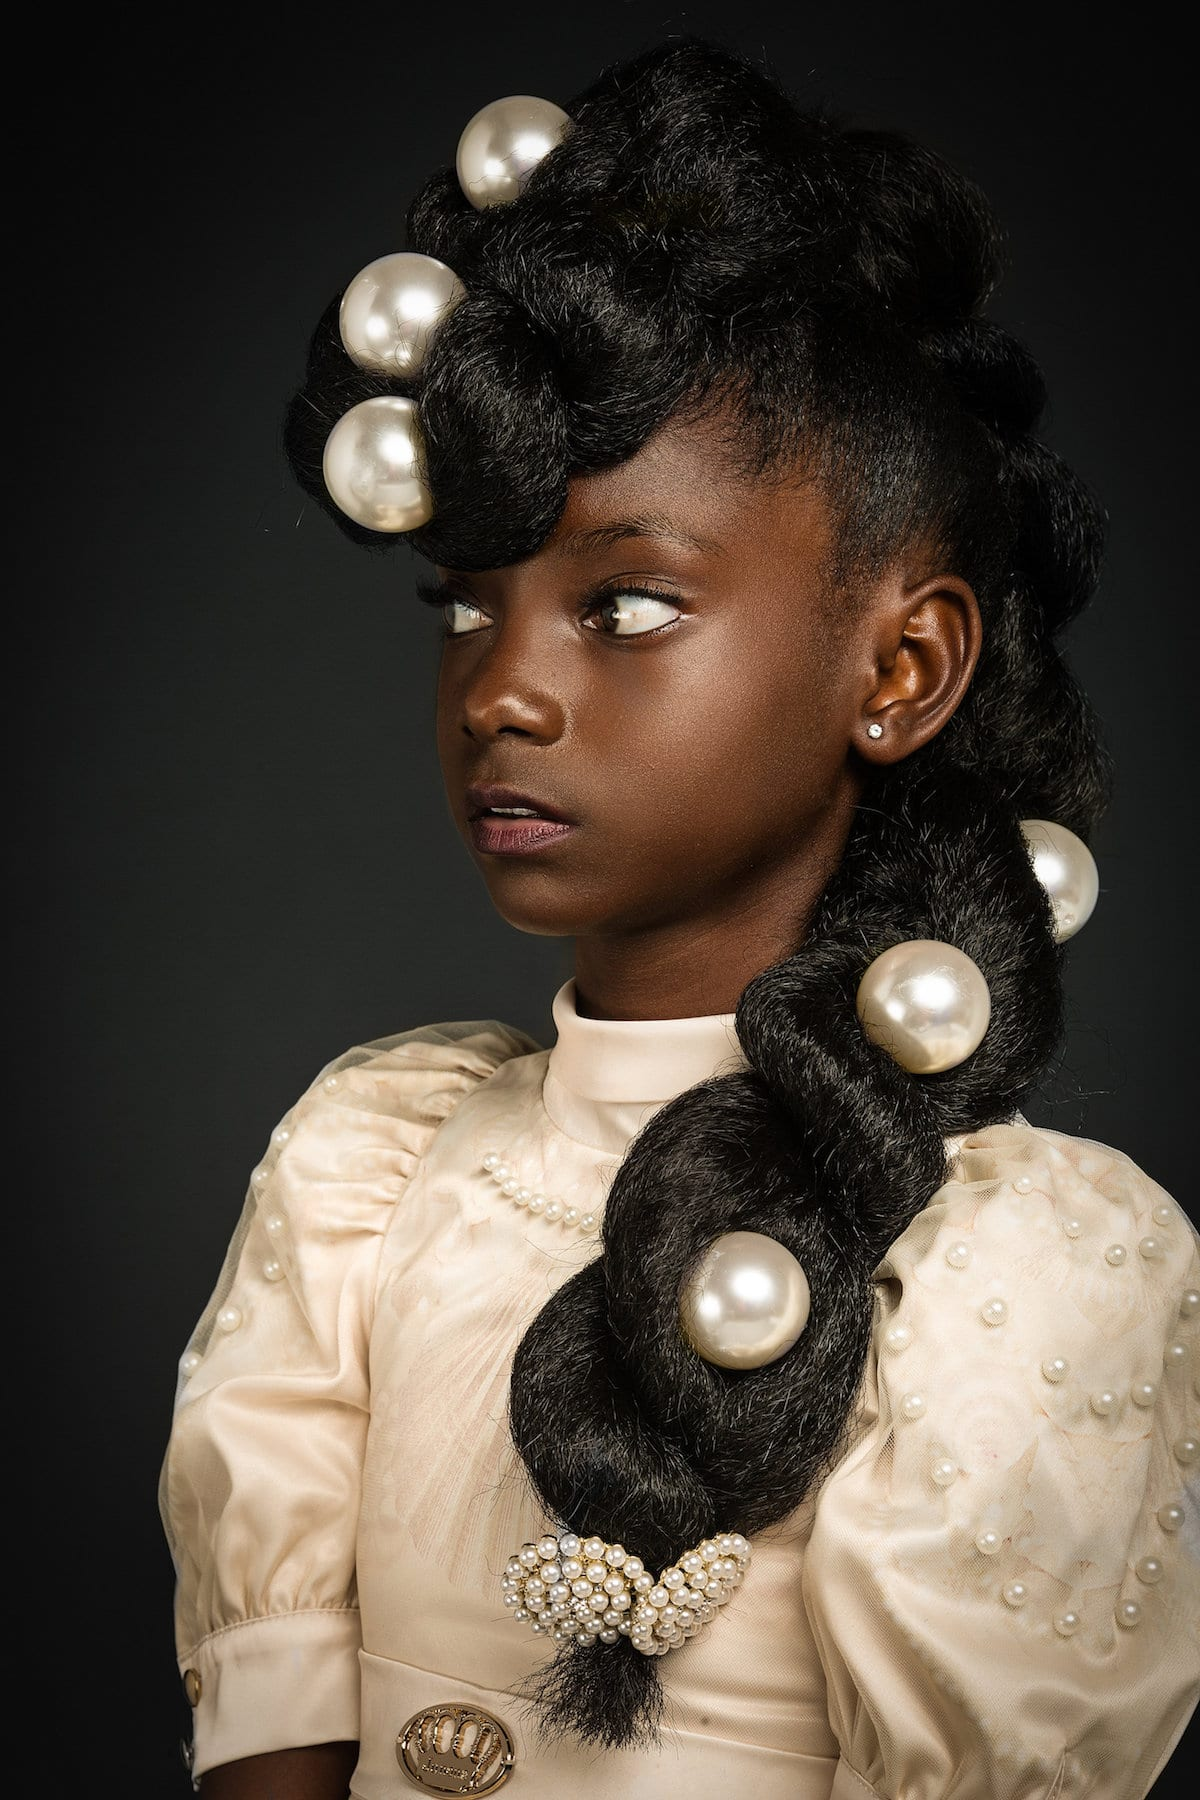 High-Fashion Afro Art Shows Portraits of Girls Rocking Their ...